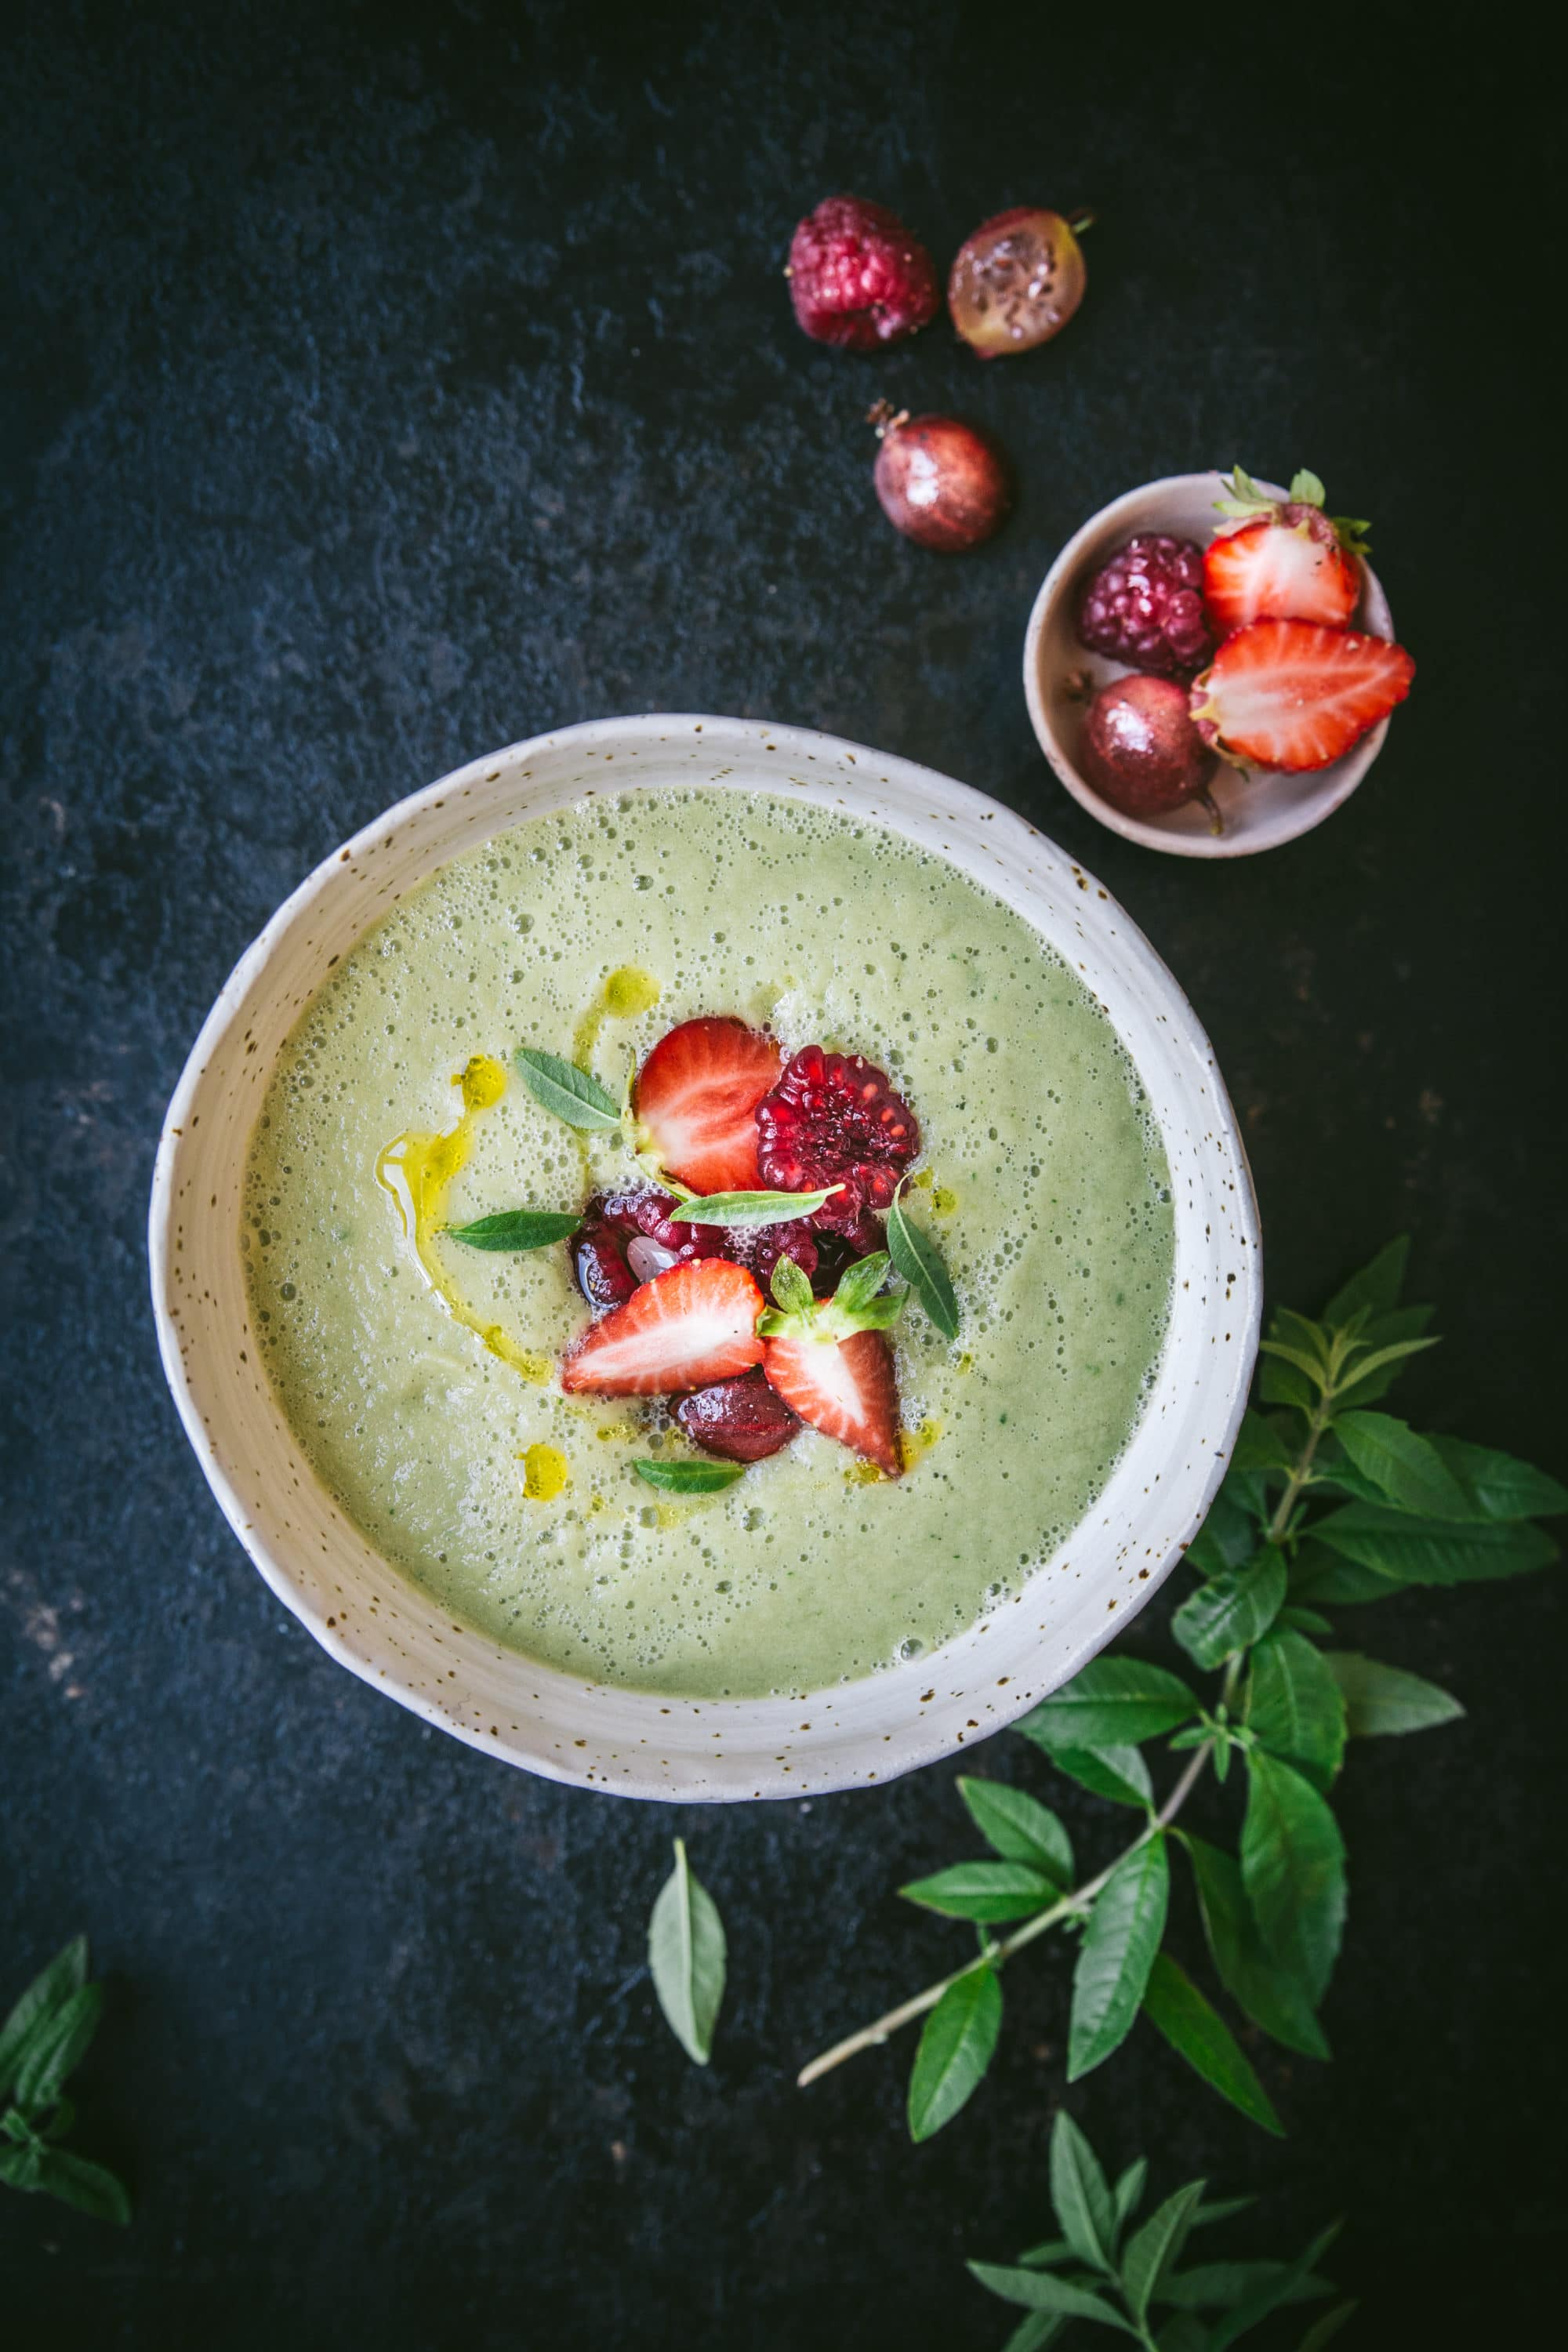 Gaspacho concombres - megandcook - megane Arderighi - styliste culinaire